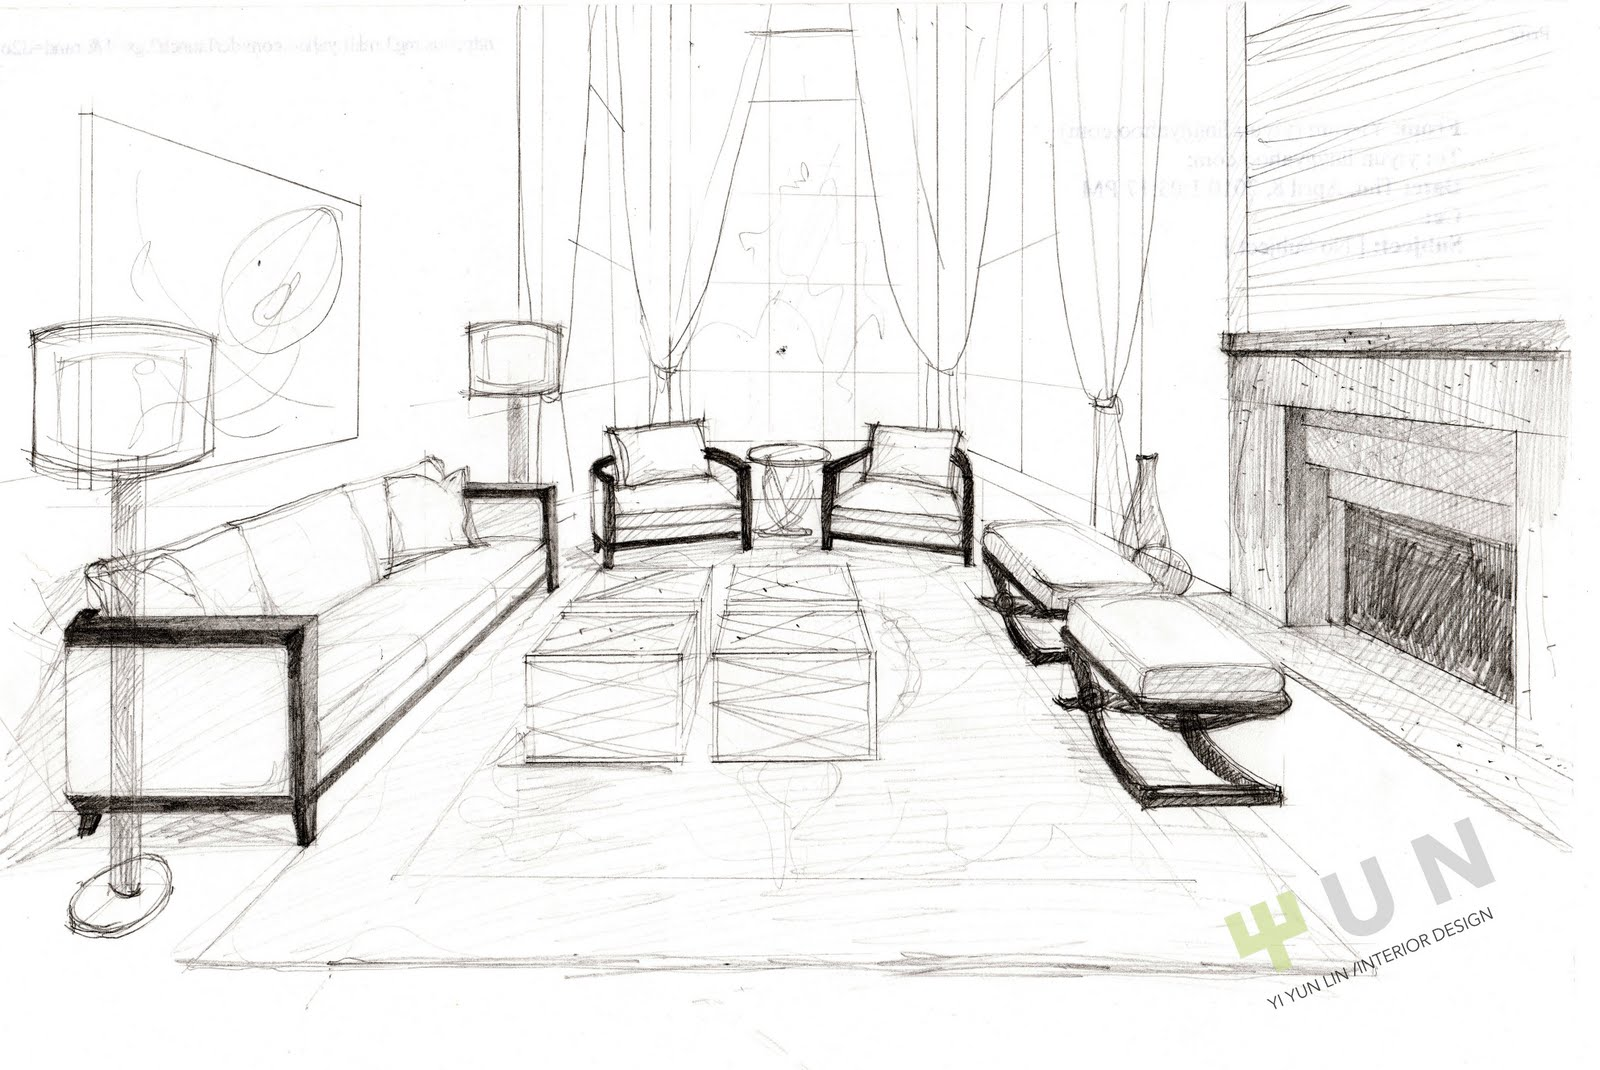 Interior design sketches wallpress 1080p hd desktop for Inter designing